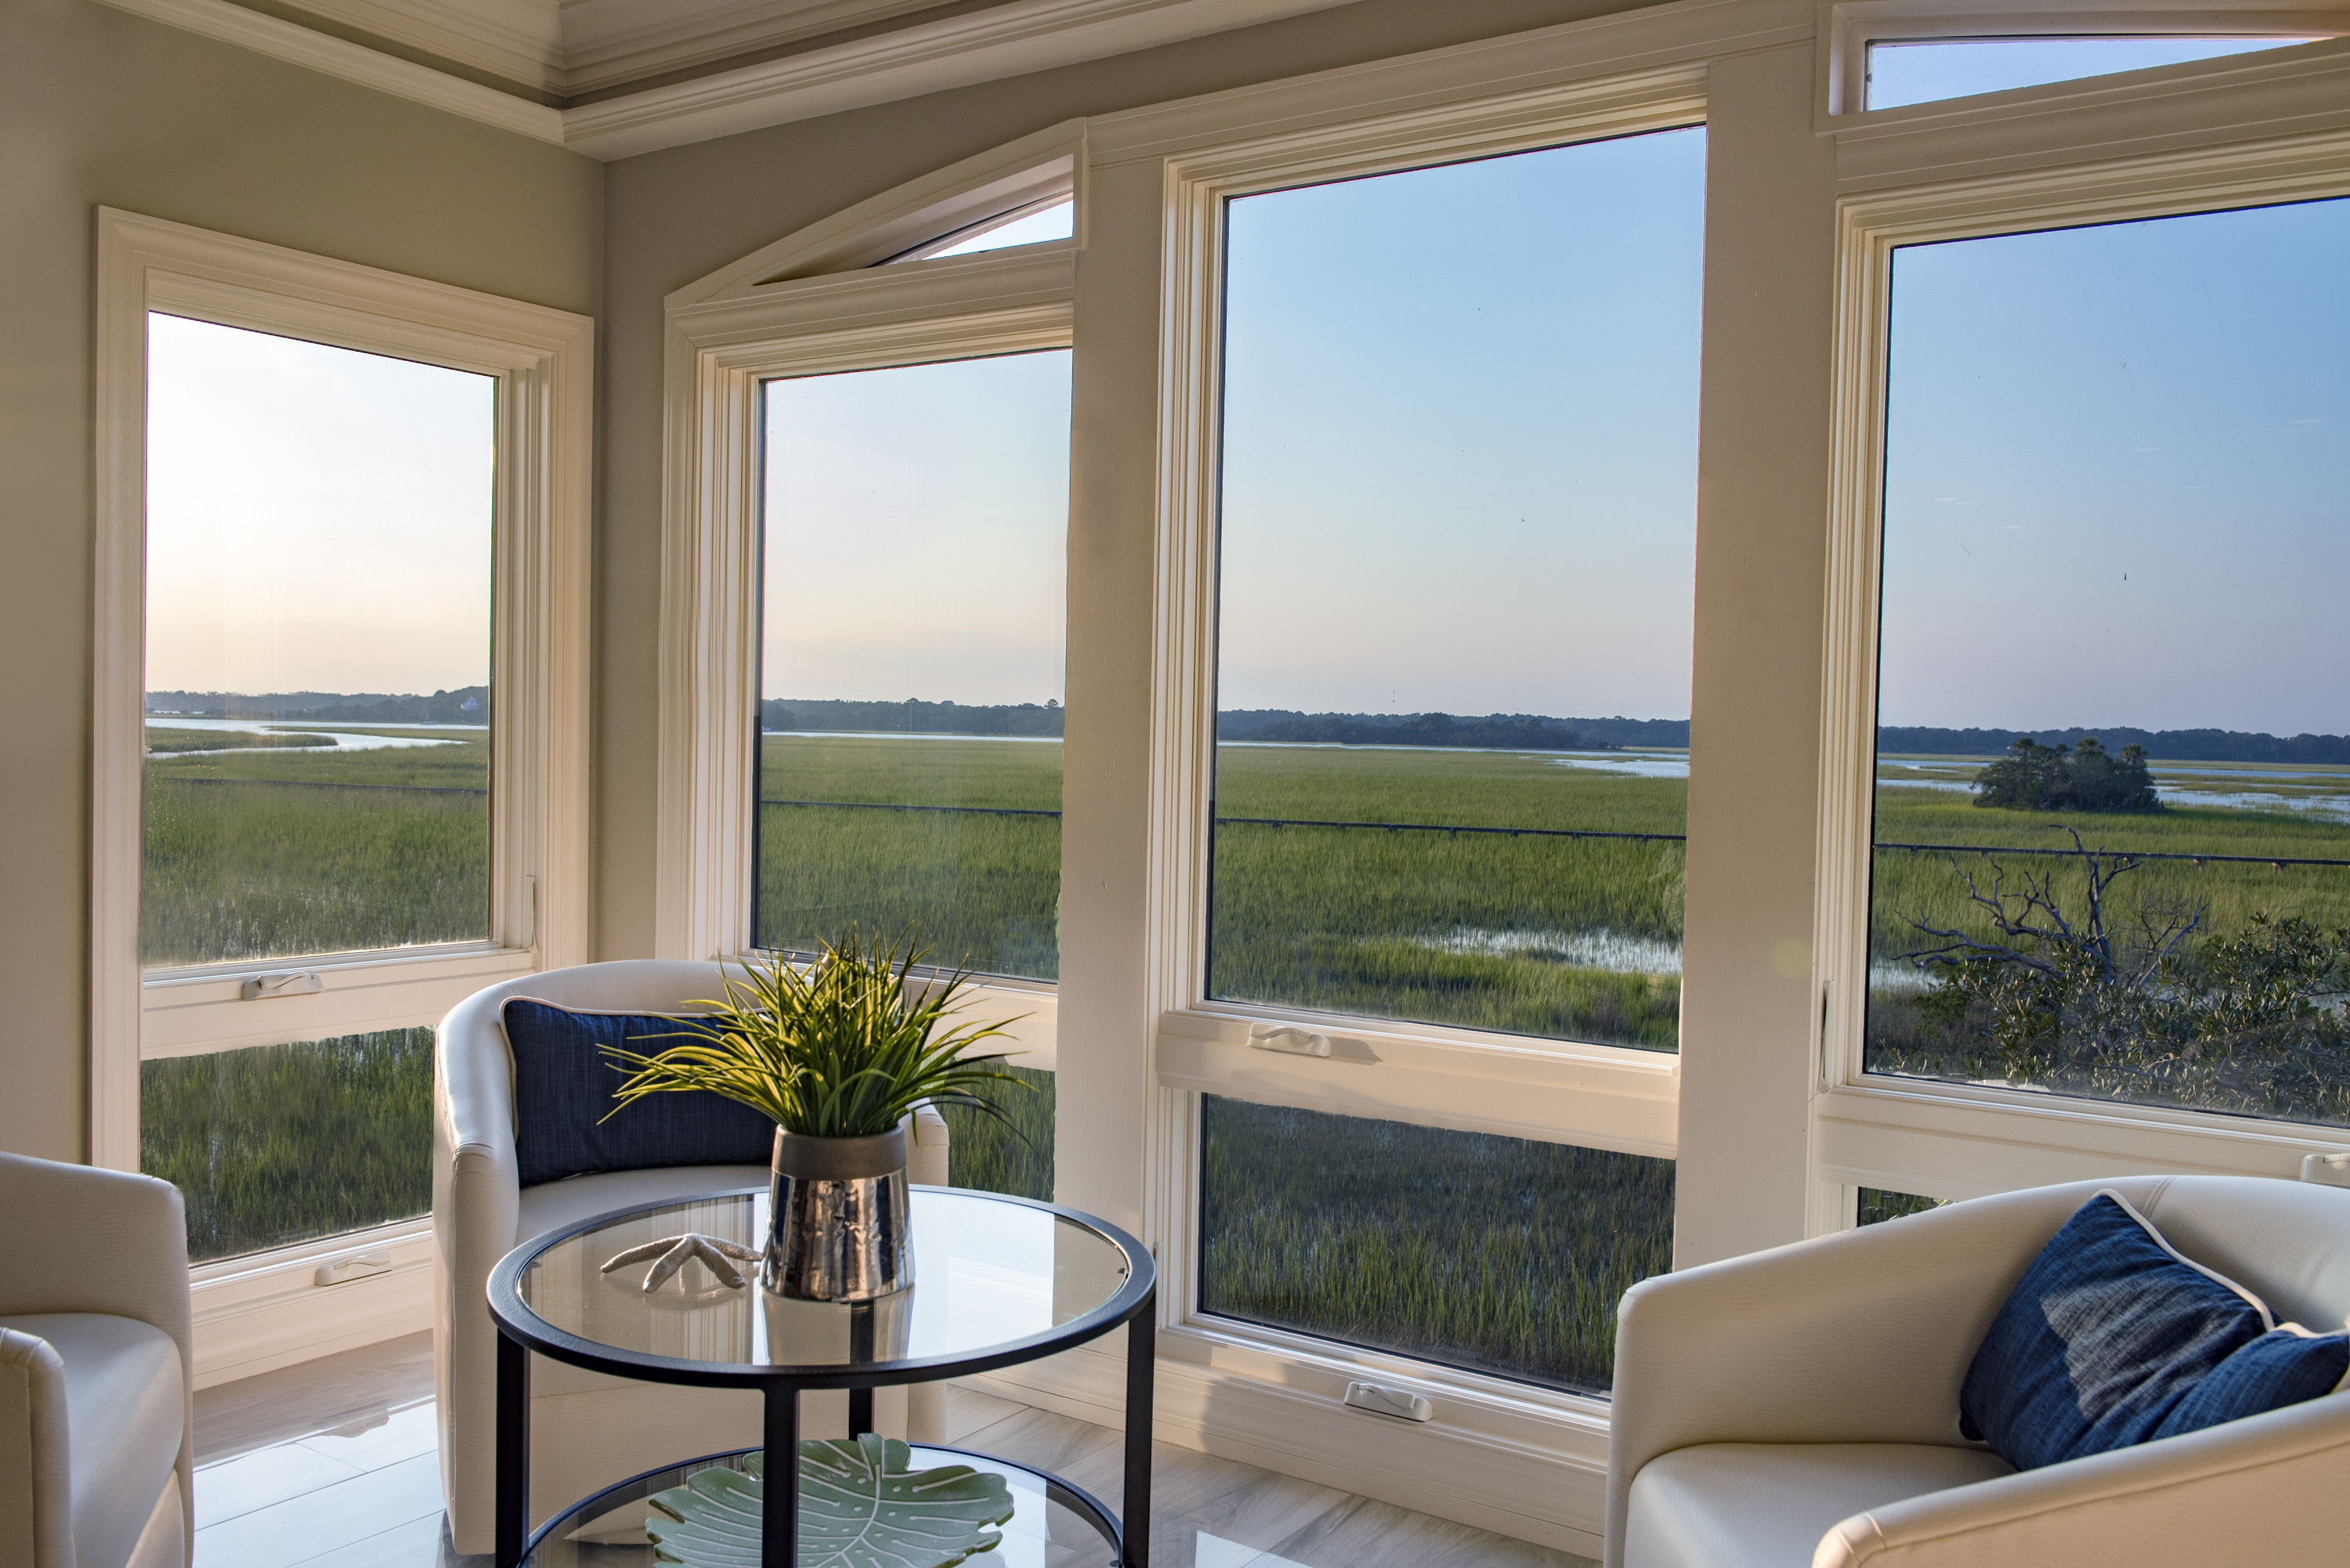 Watch the wildlife and boats from peaceful enclosed patio!